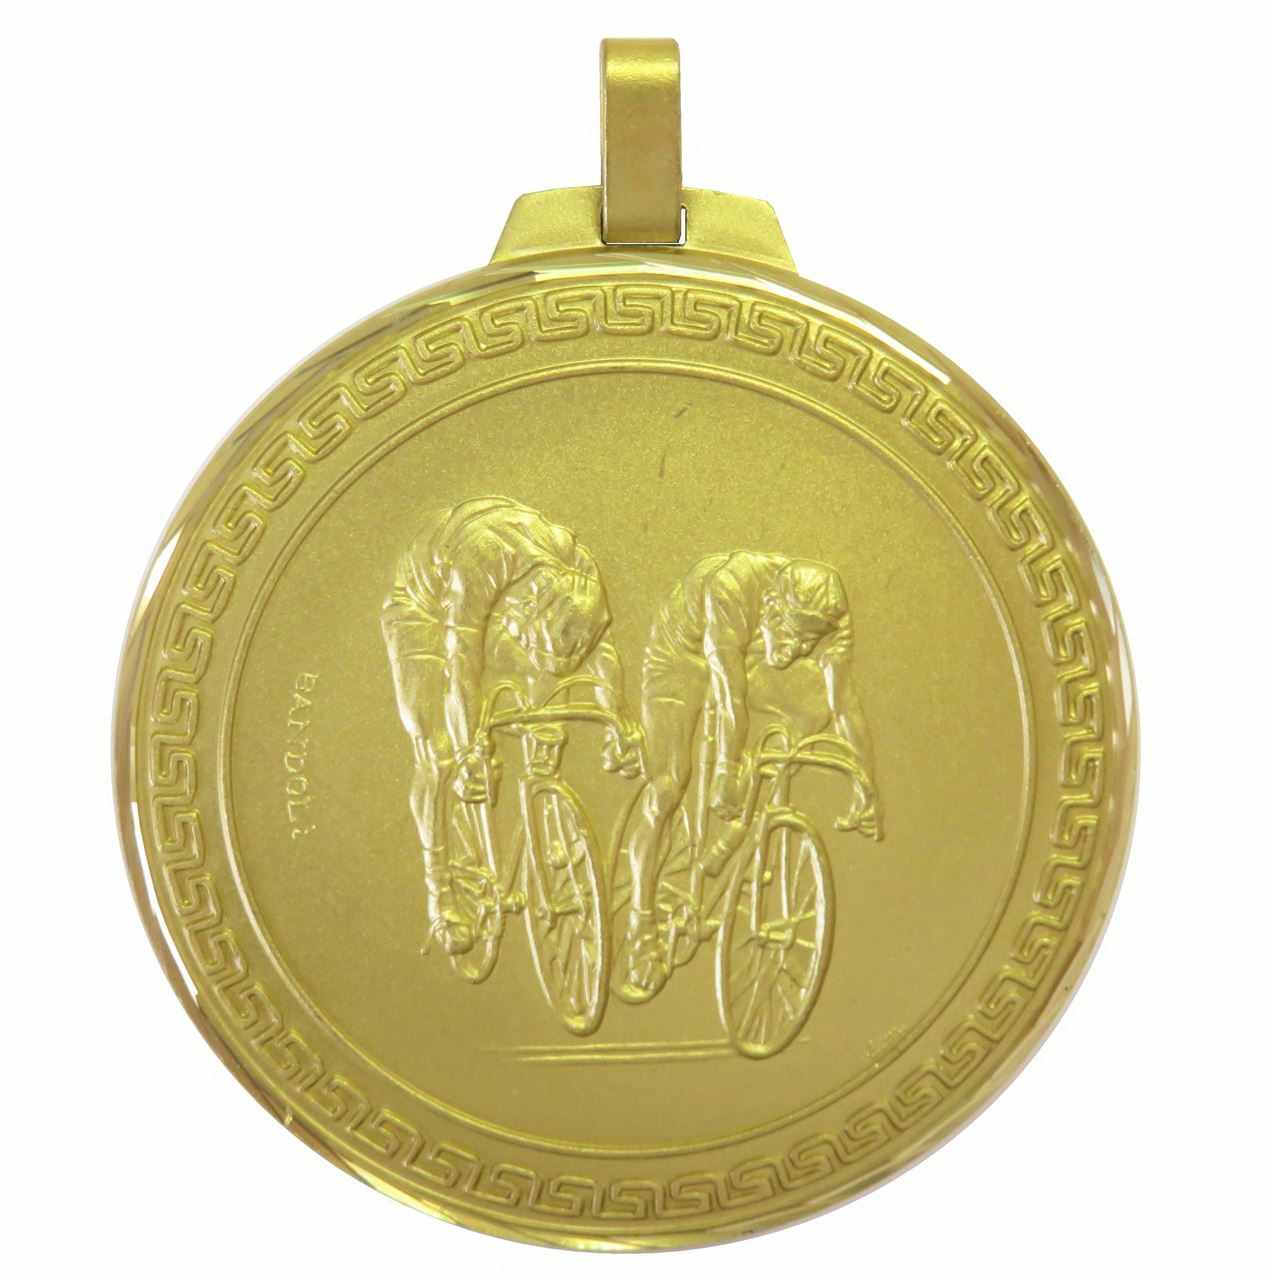 Gold Faceted Cycle Race Medal (size: 70mm) - 194F